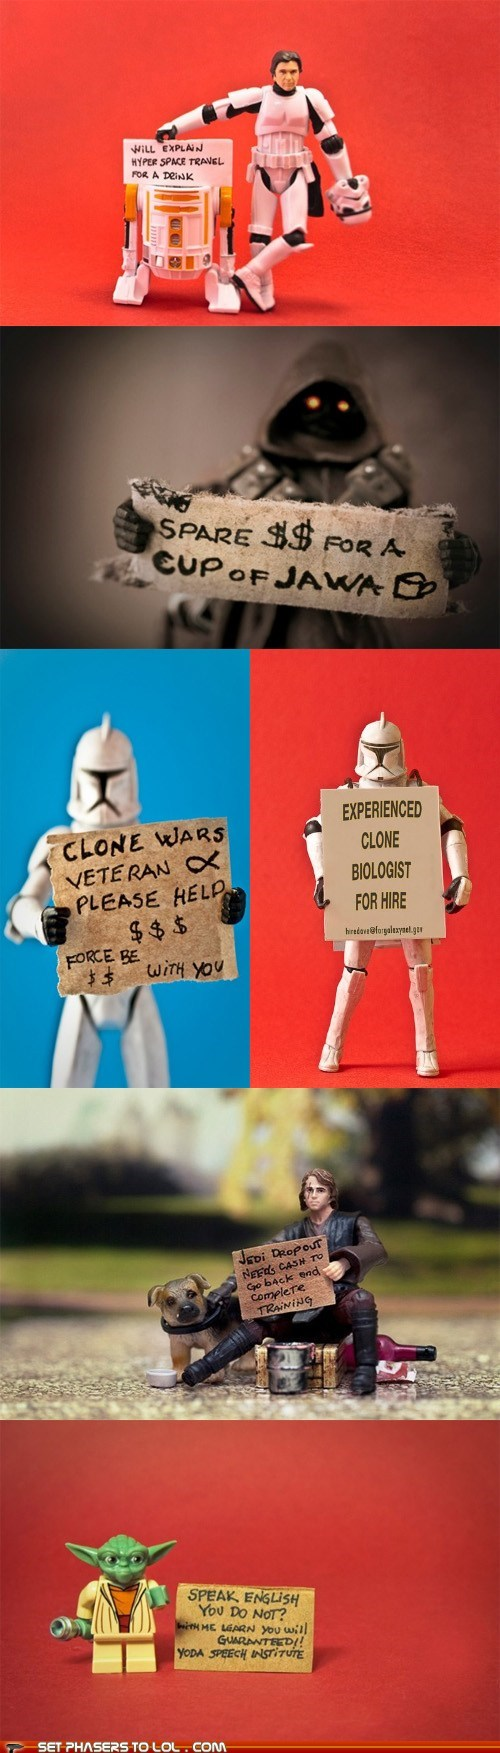 anakin skywalker,best of the week,Han Solo,homeless,money,panhandling,signs,star wars,stormtrooper,work,yoda